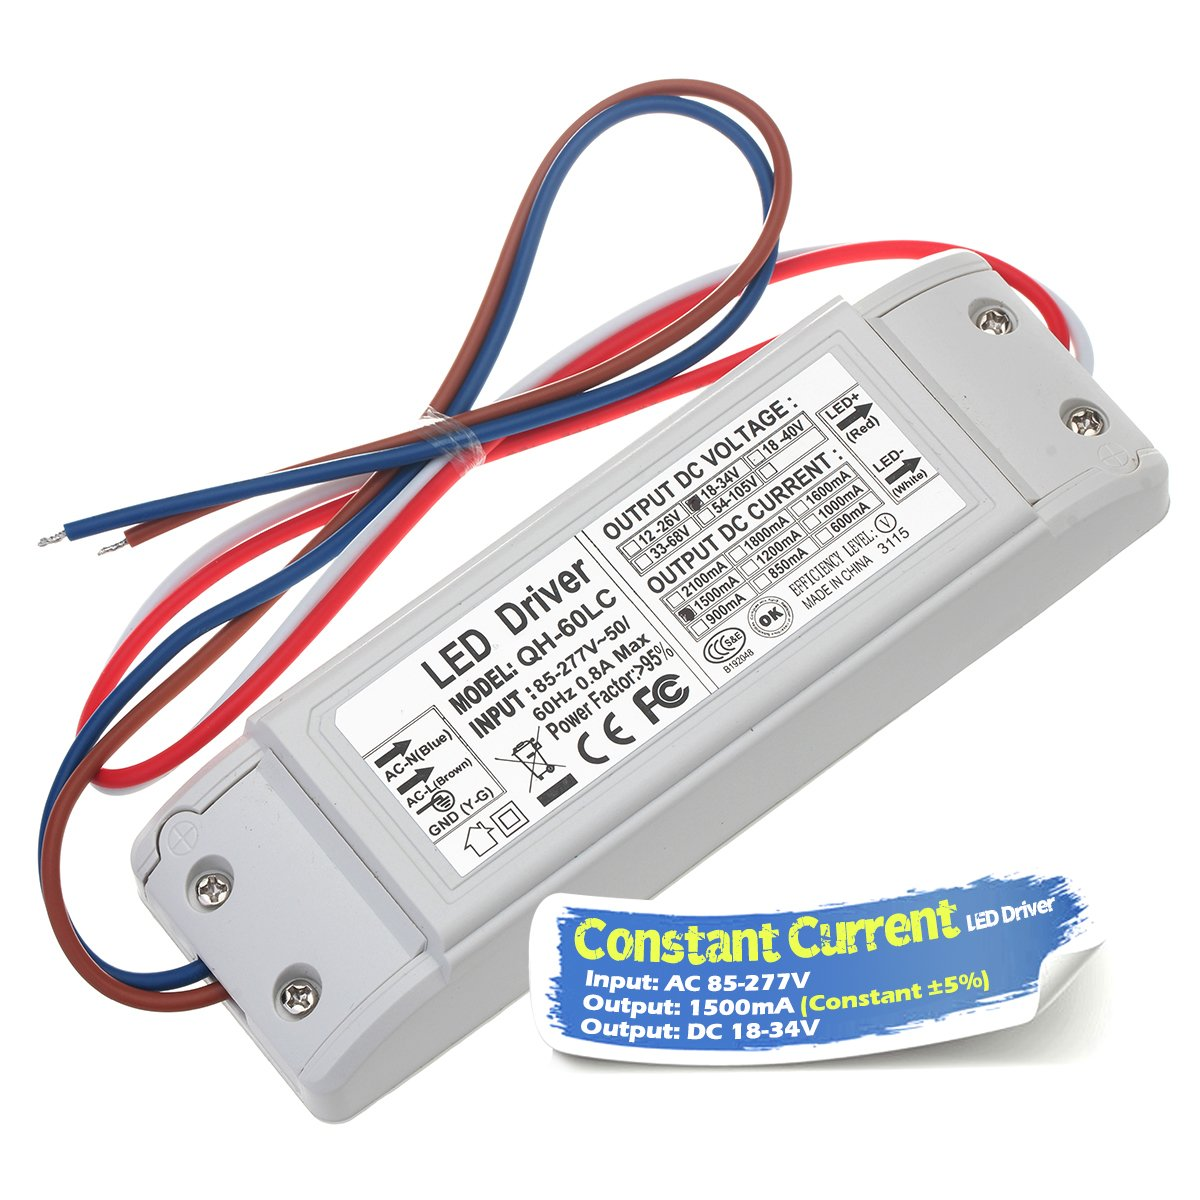 Chanzon LED Driver 1500mA (Constant Current Output) 18V-34V (Input 85-277V AC-DC) (6-10) x5 30W 35W 40W 45W 50W Power Supply 1500 mA Lighting Transformer for High Power 50 W COB Chips (Plastic Case)